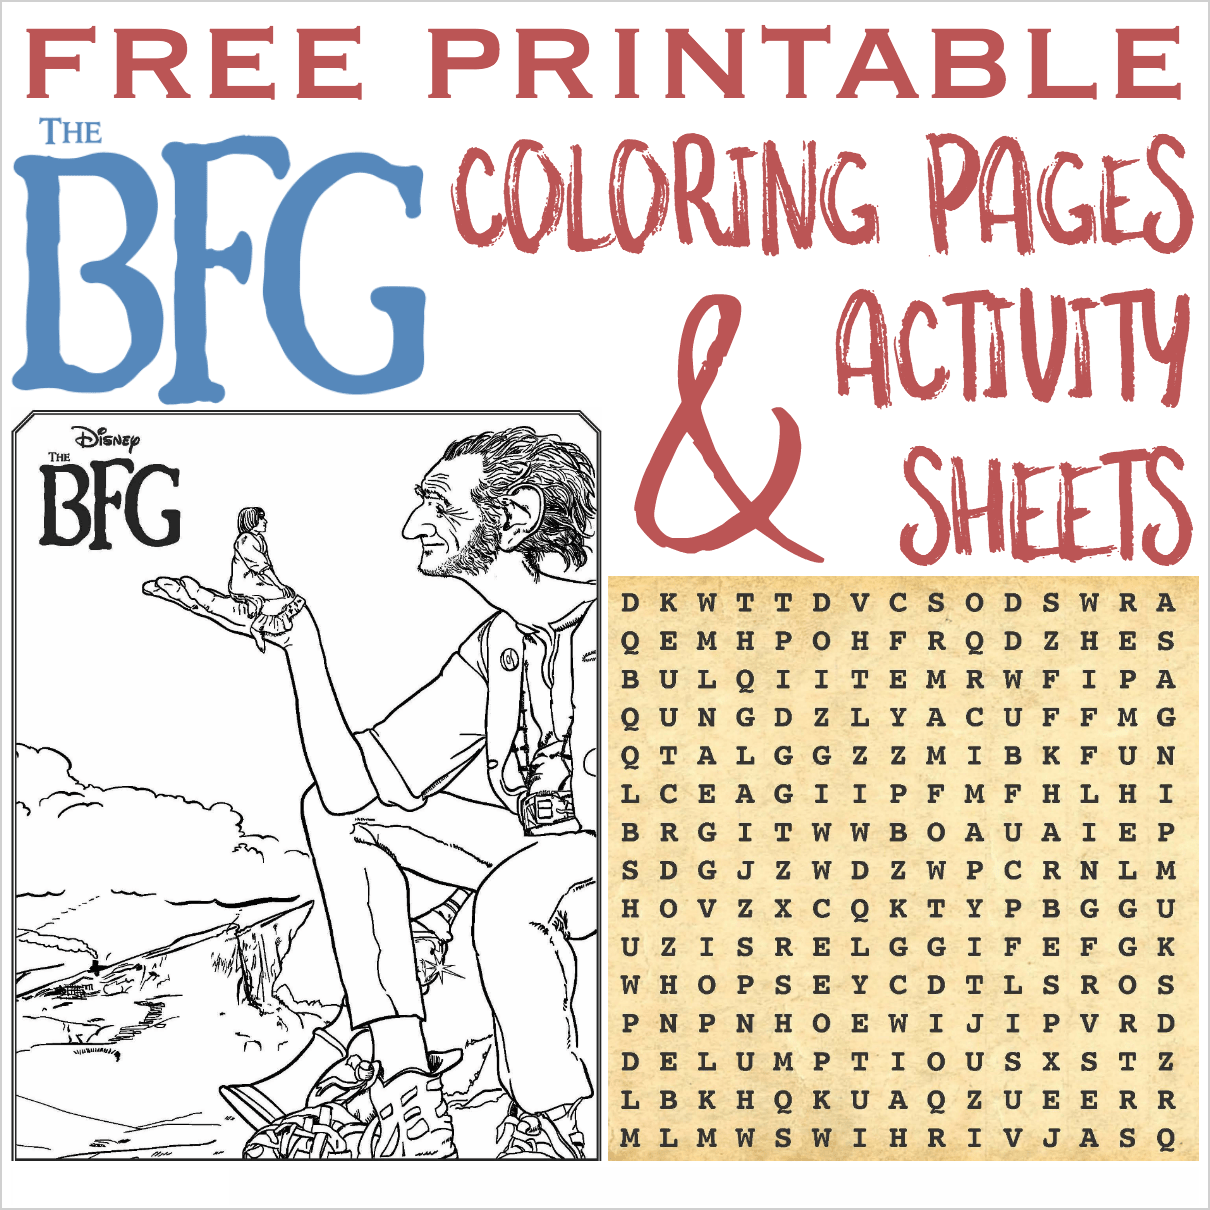 The Bfg Printable Coloring Pages And Activity Sheets